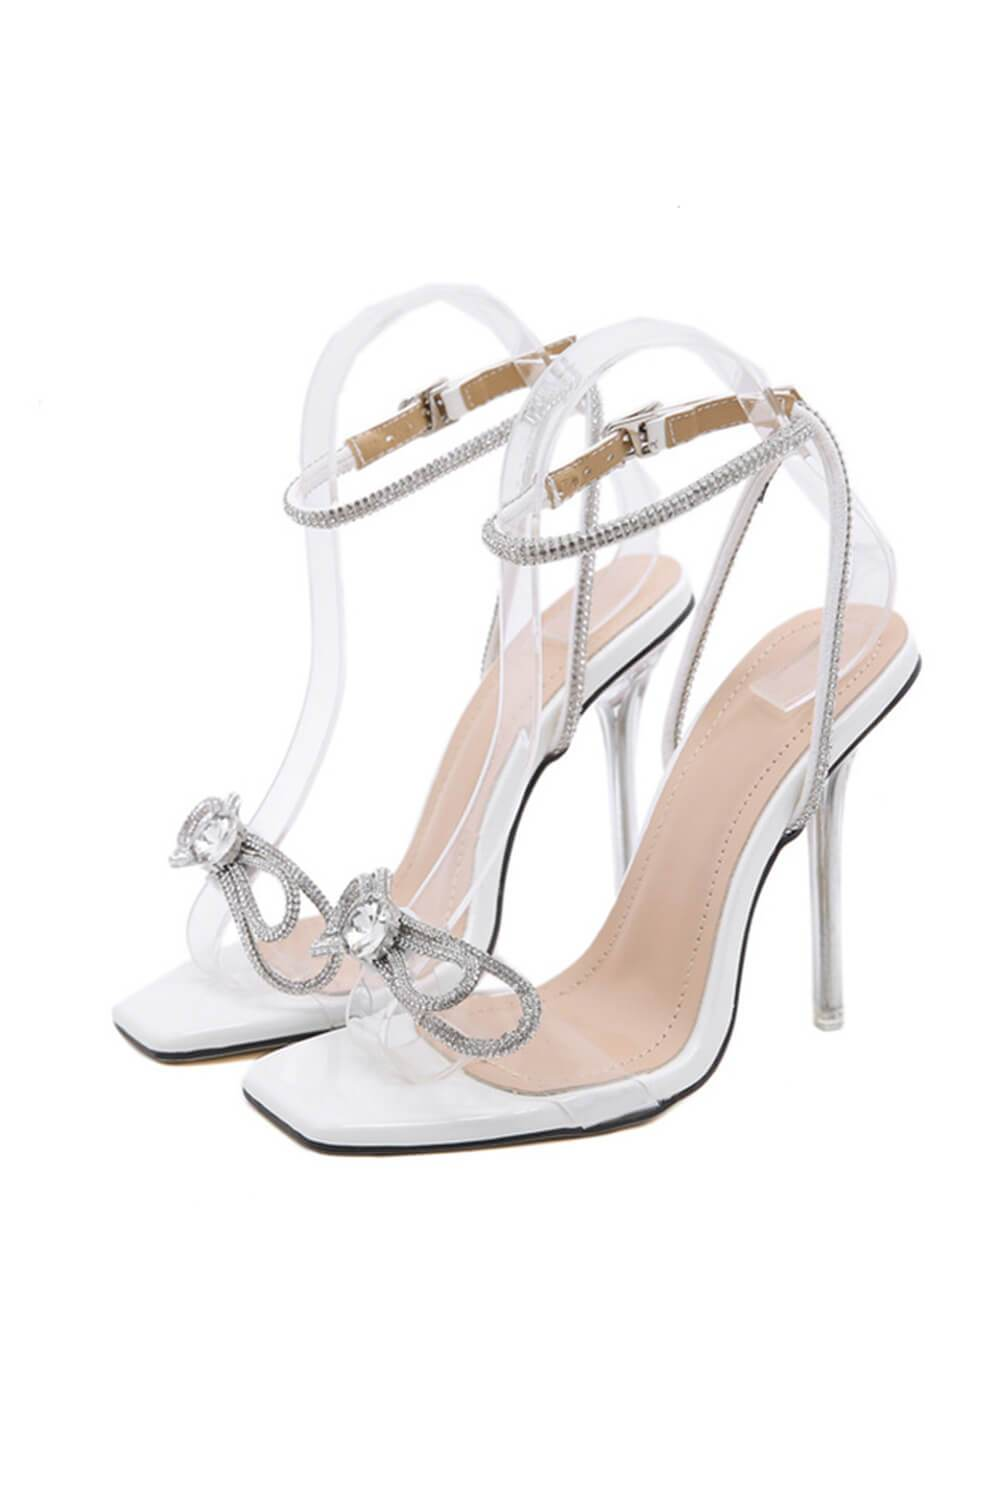 White Patent Diamante Bow Detail Square Toe Clear Perspex Heel